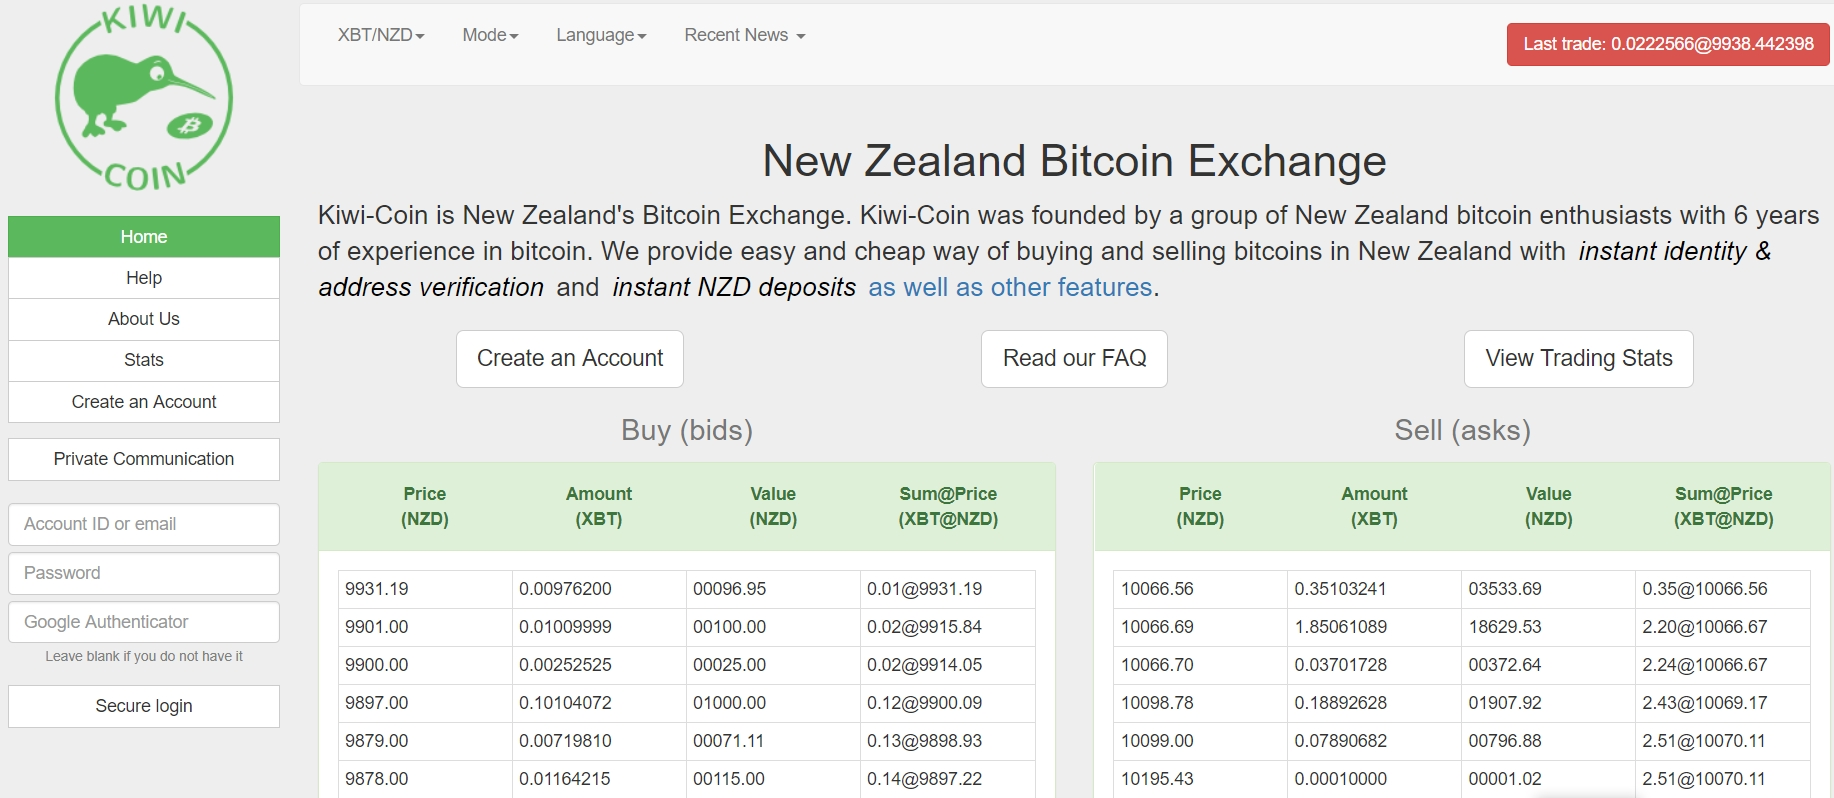 Kiwi-Coin BTC exchange